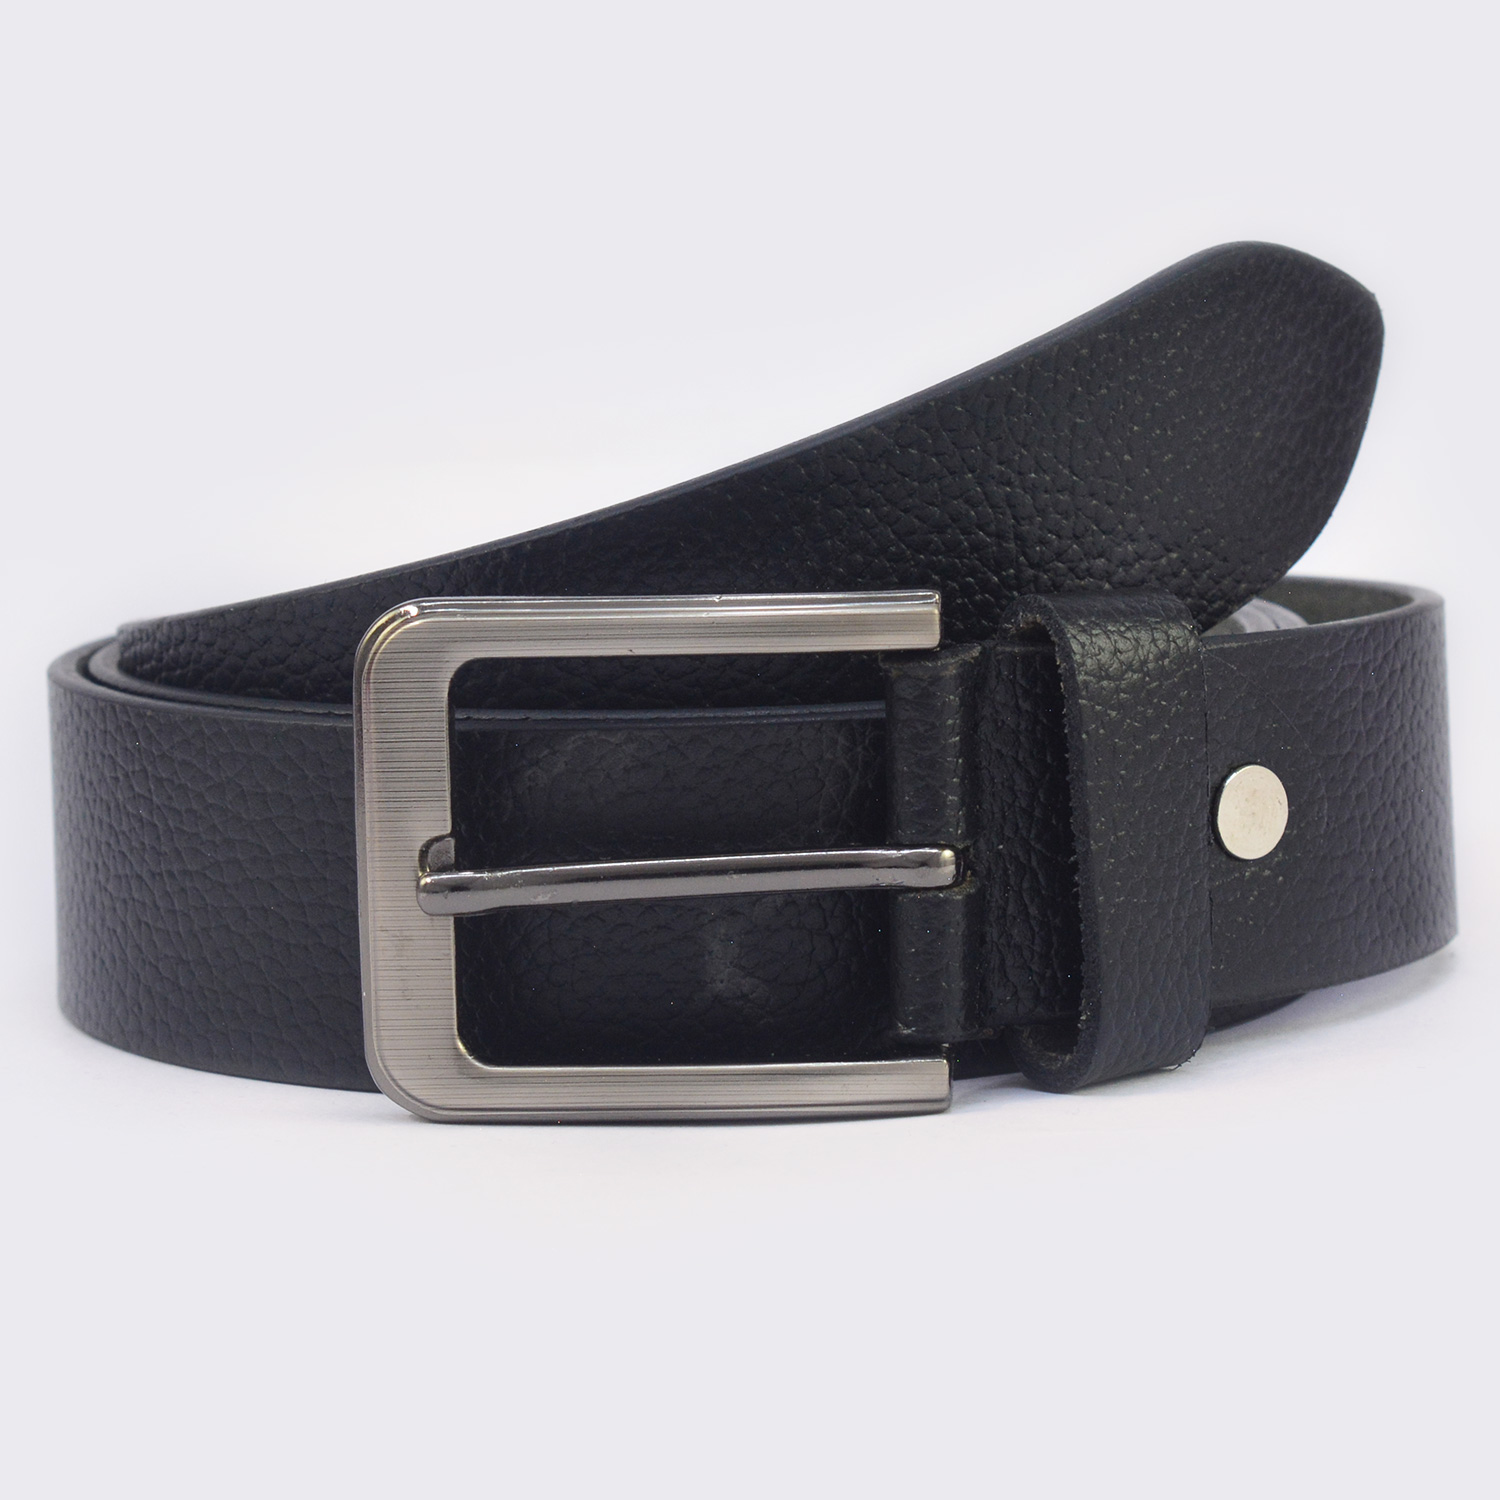 Black Color Amazing Looking Buckle Leather Belt